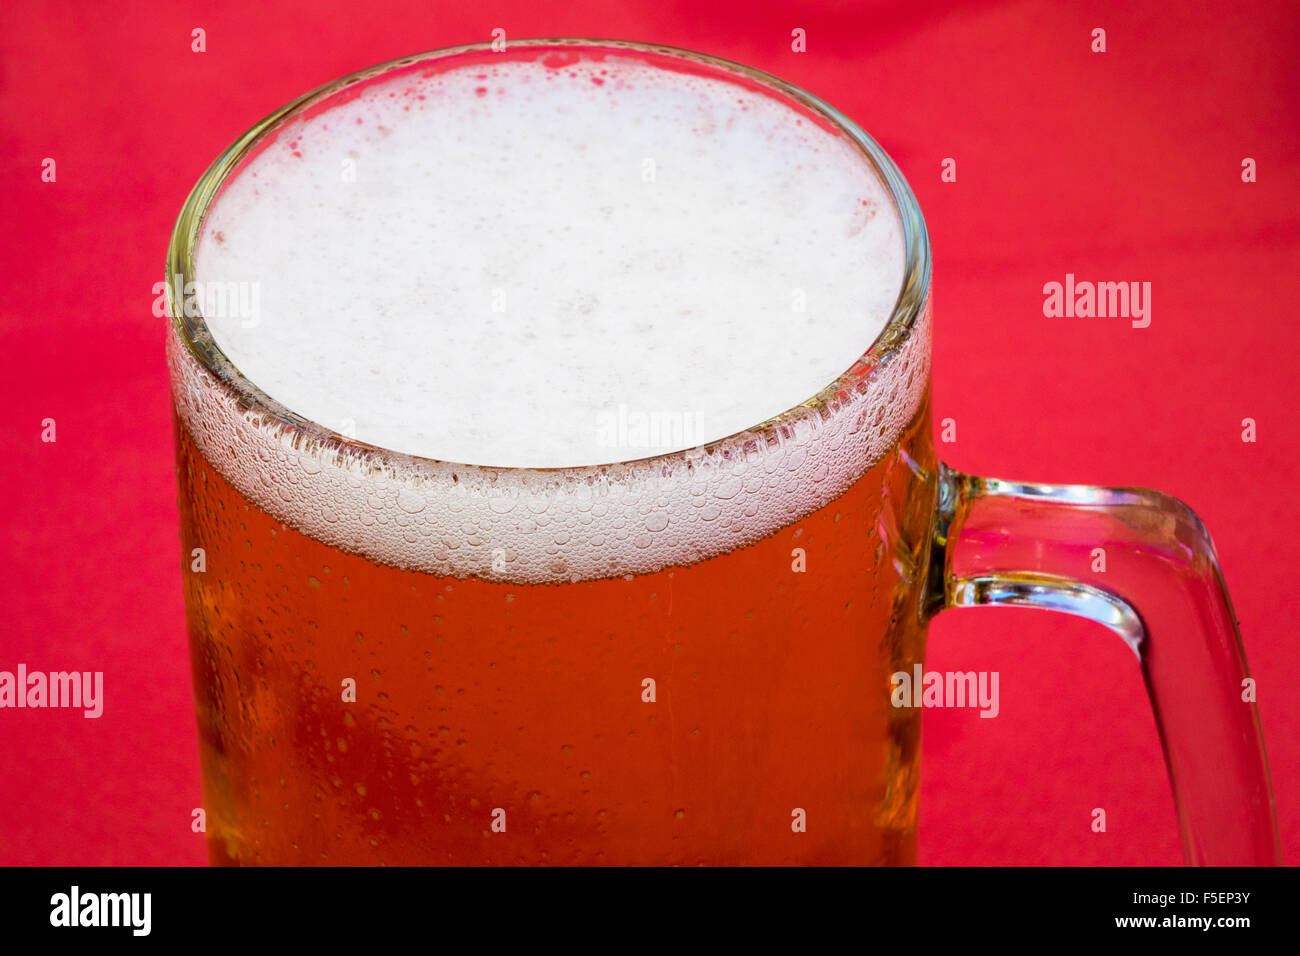 Beer in a glass tankard - Stock Image